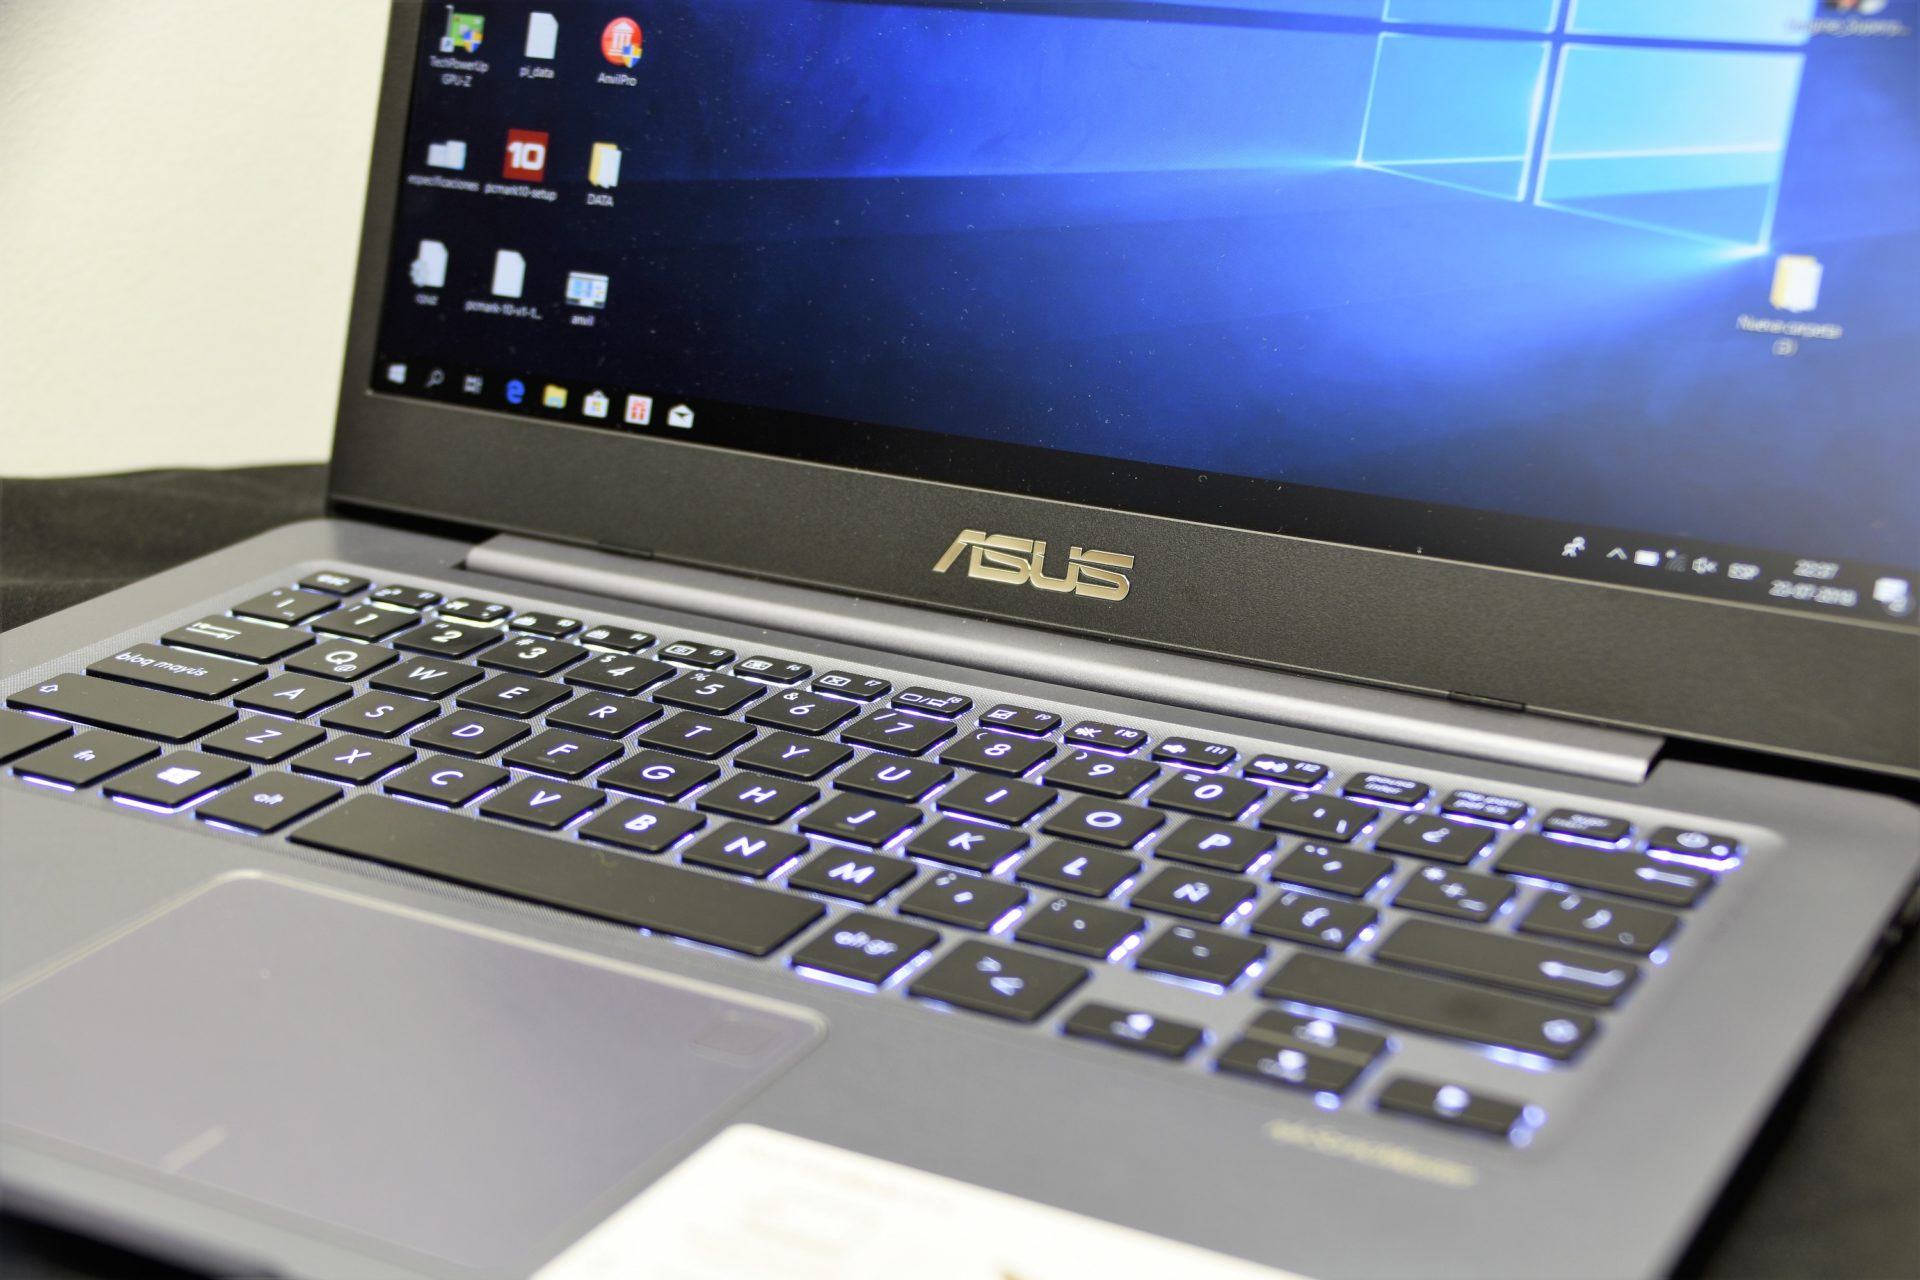 Review ASUS VivoBook S14 S406UA-BM013T (Slim Laptop) |